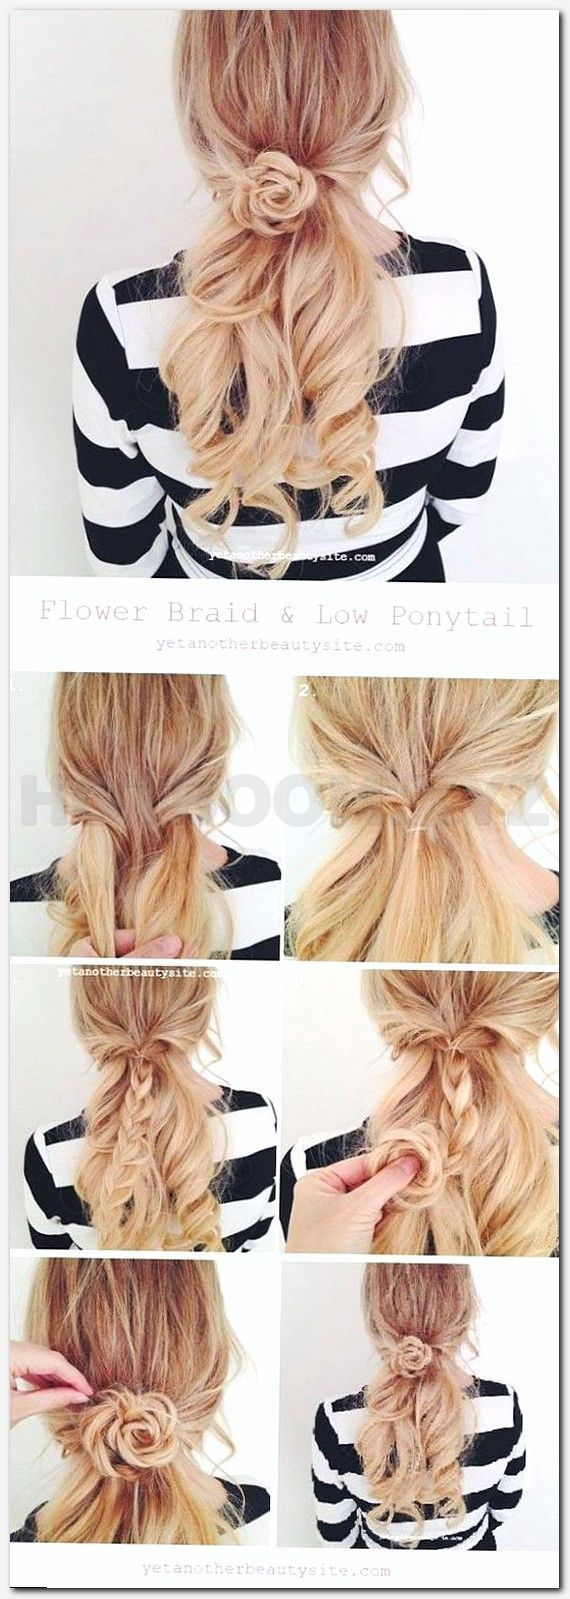 great wedding hairstyles, short hair with round face, new style hair cutting, new trends in haircuts, wedding, hair autumn 2017, basic hairstyles, natural hairdos, easy beginner hairstyles, best long hairstyles, long curly layered hair, kid boy hairstyles